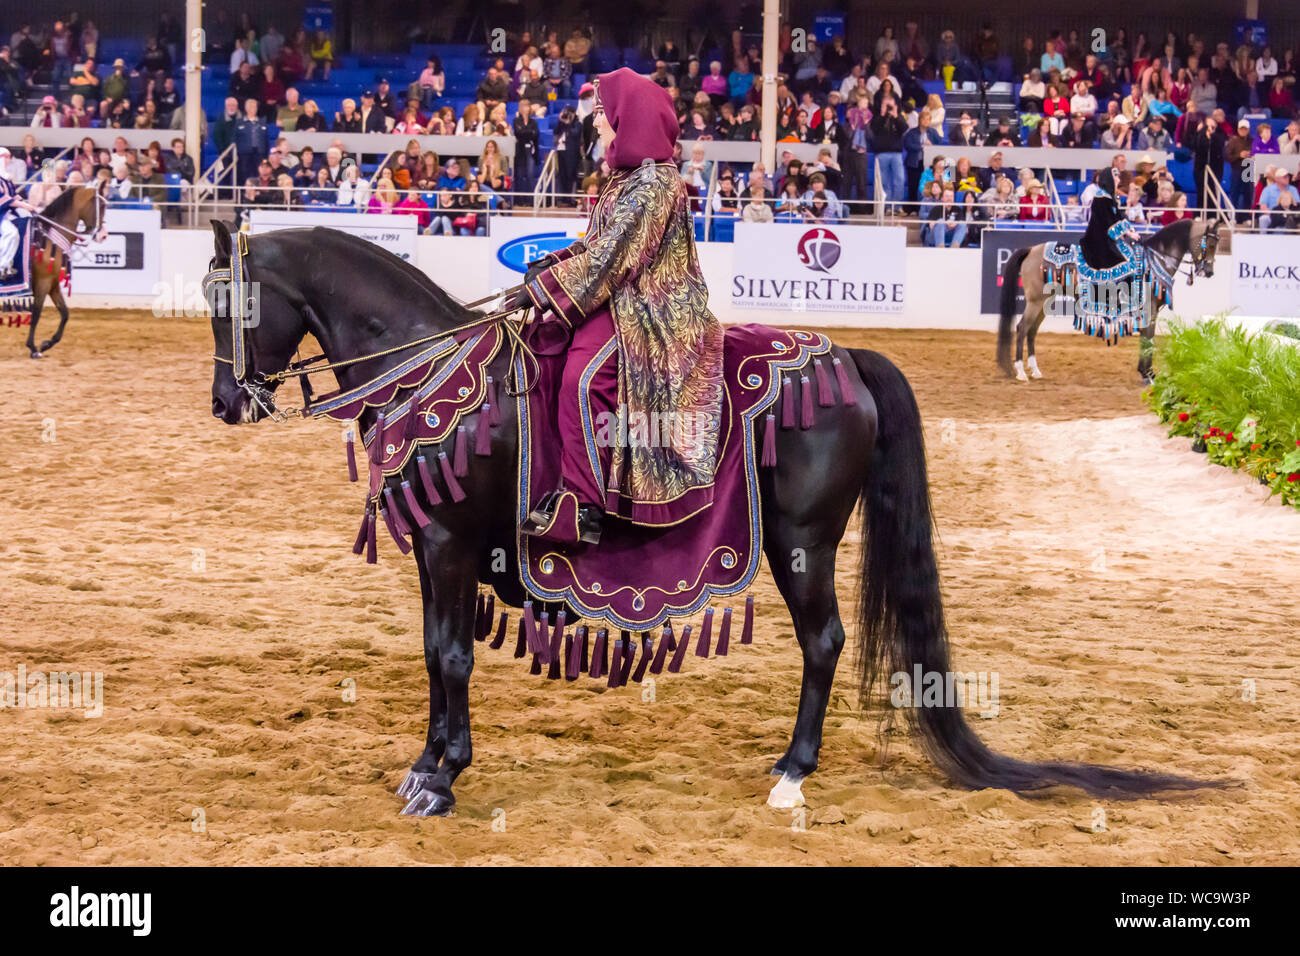 Scottsdale Arabian Horse Show Arabian Costume Stock Photo Alamy